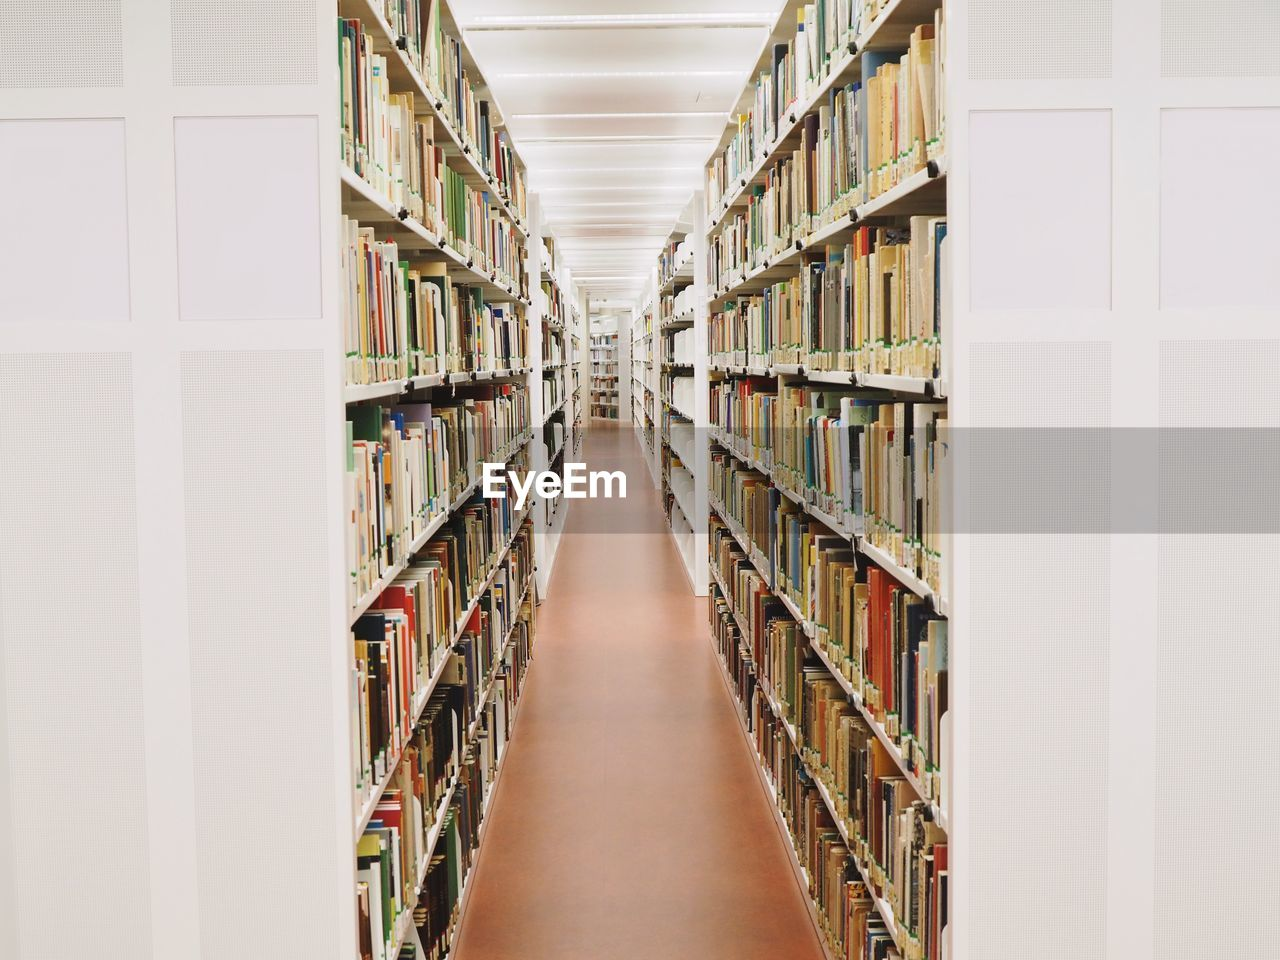 shelf, publication, book, indoors, bookshelf, education, library, large group of objects, learning, literature, abundance, no people, order, arrangement, diminishing perspective, architecture, in a row, arcade, wisdom, aisle, studying